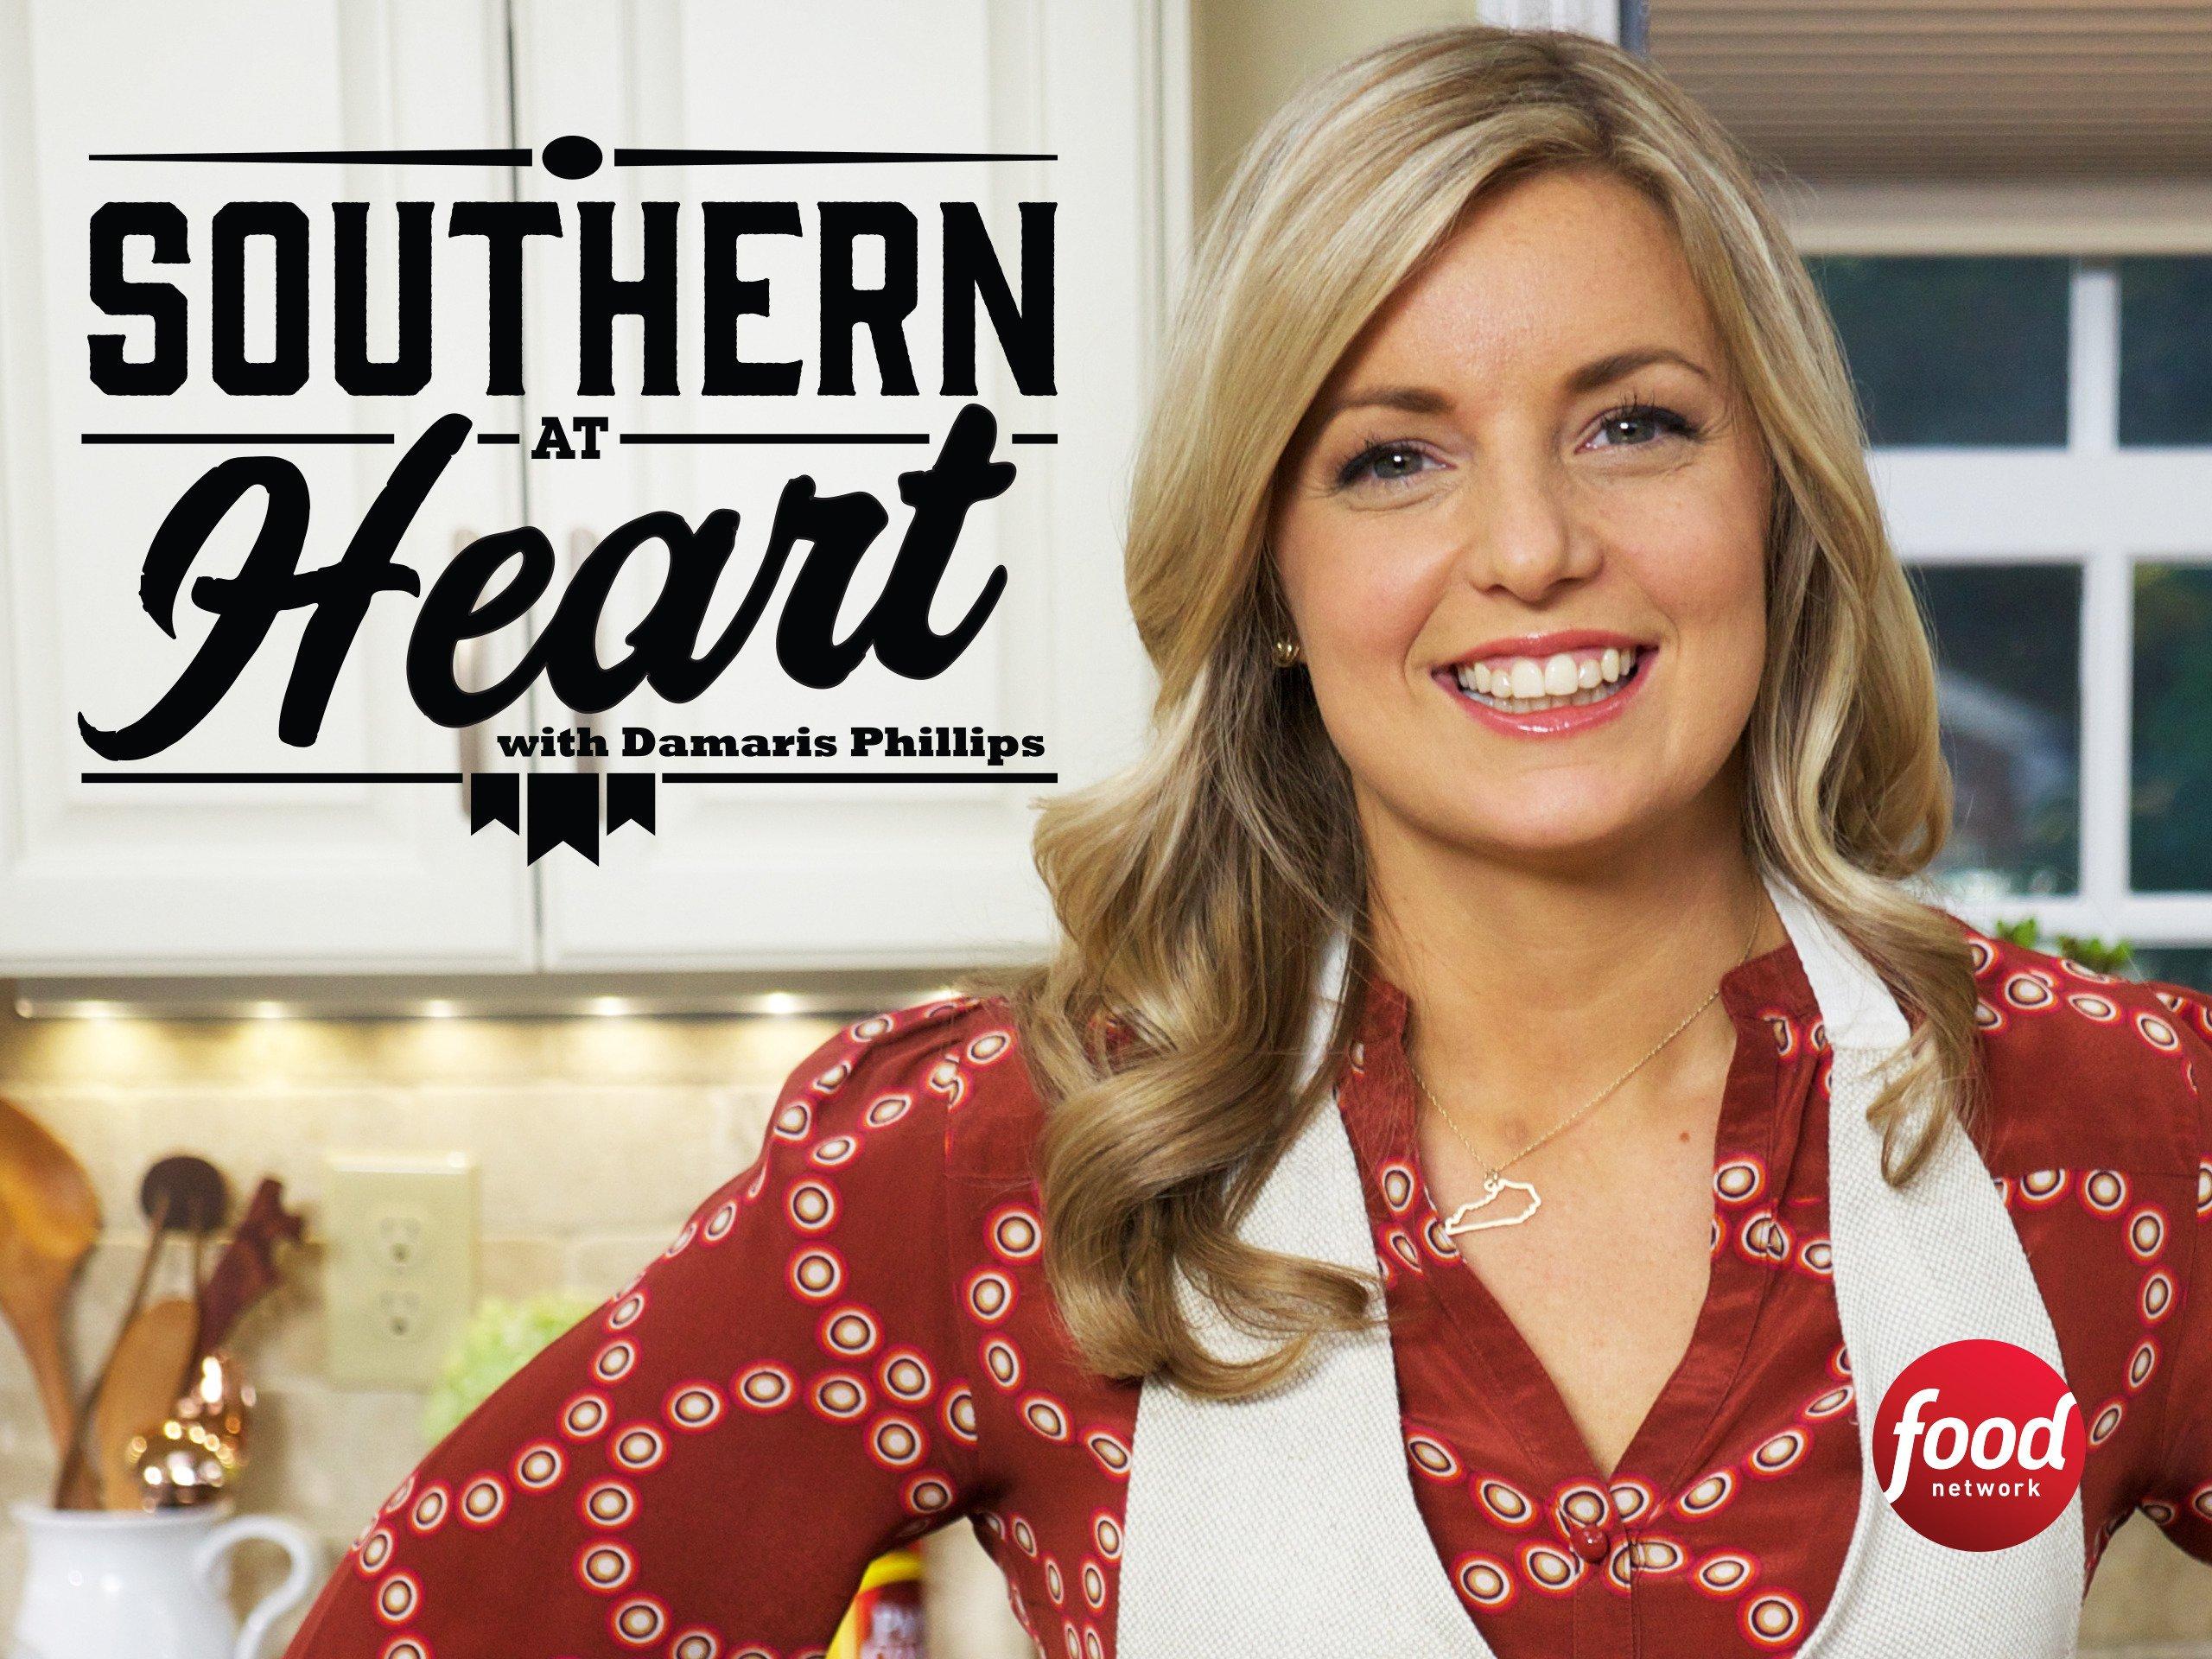 The host of  Southern at Heart, Damaris Phillips